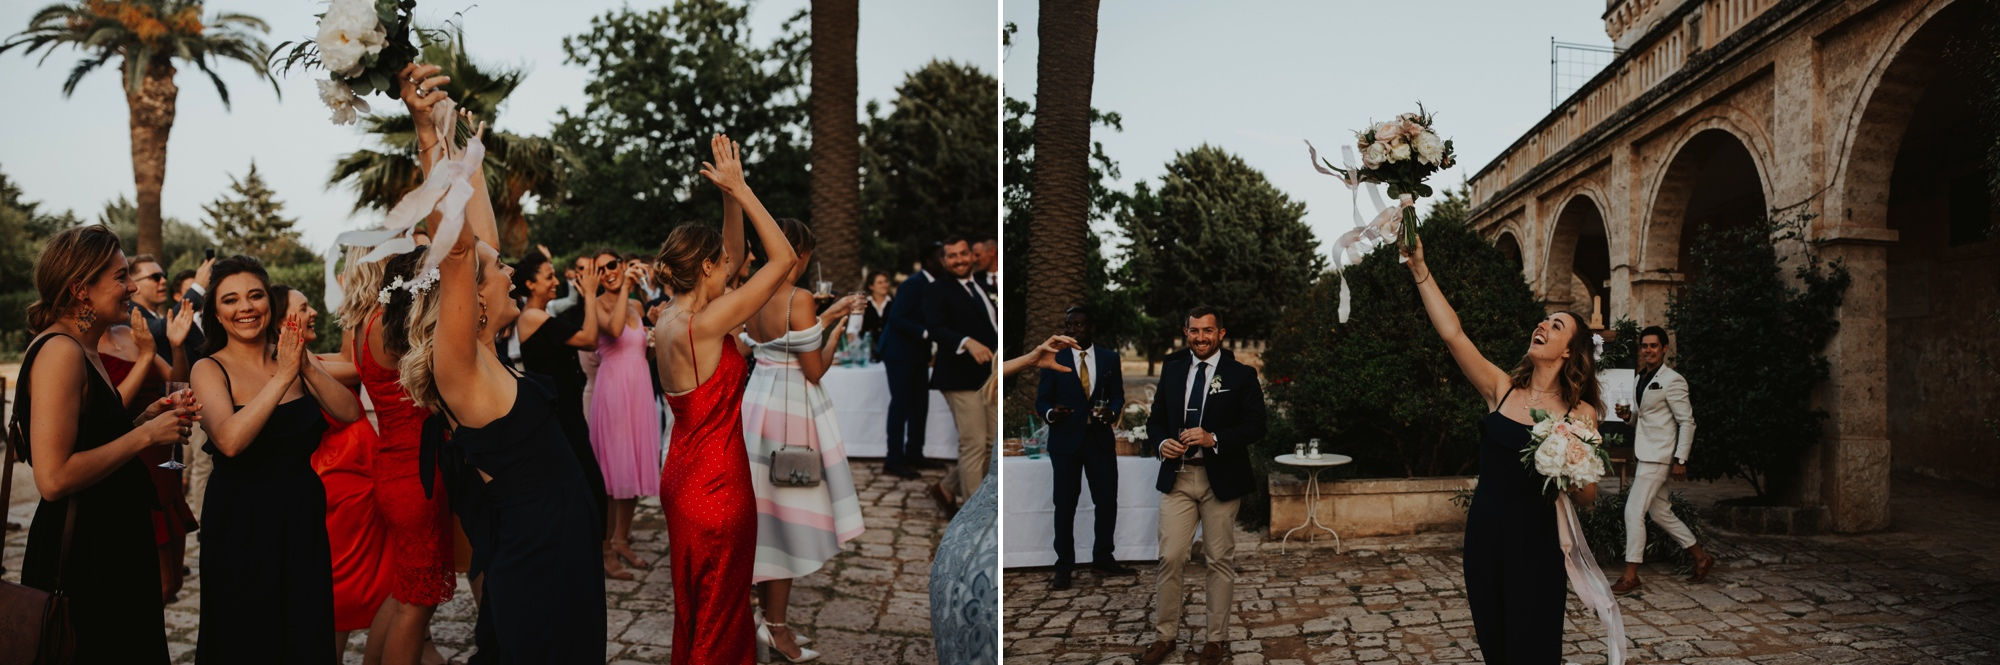 0000000056_Rob and Lucy-591_Rob and Lucy-592_Italy_Just_Engaged_got_Destination_Weddings.jpg